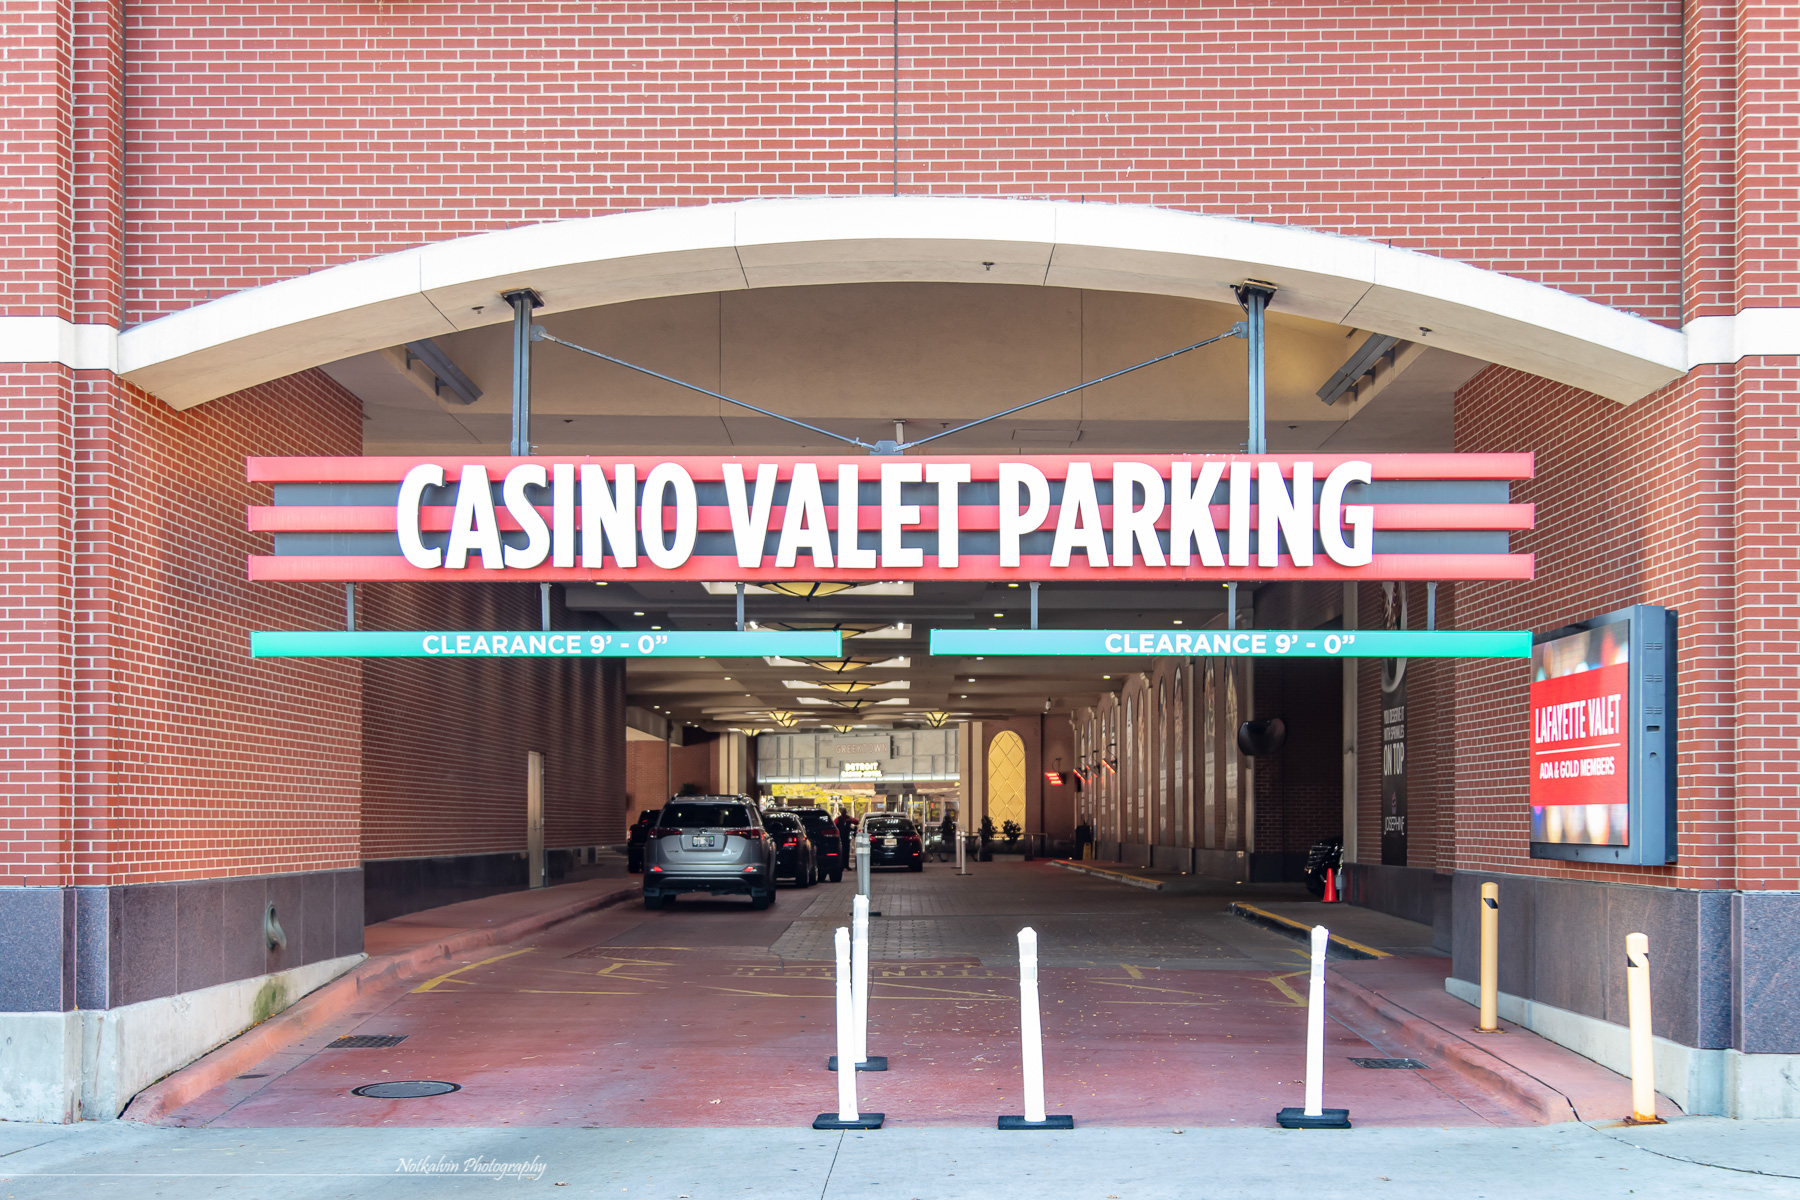 Valet parking entrance - 1z3a8585